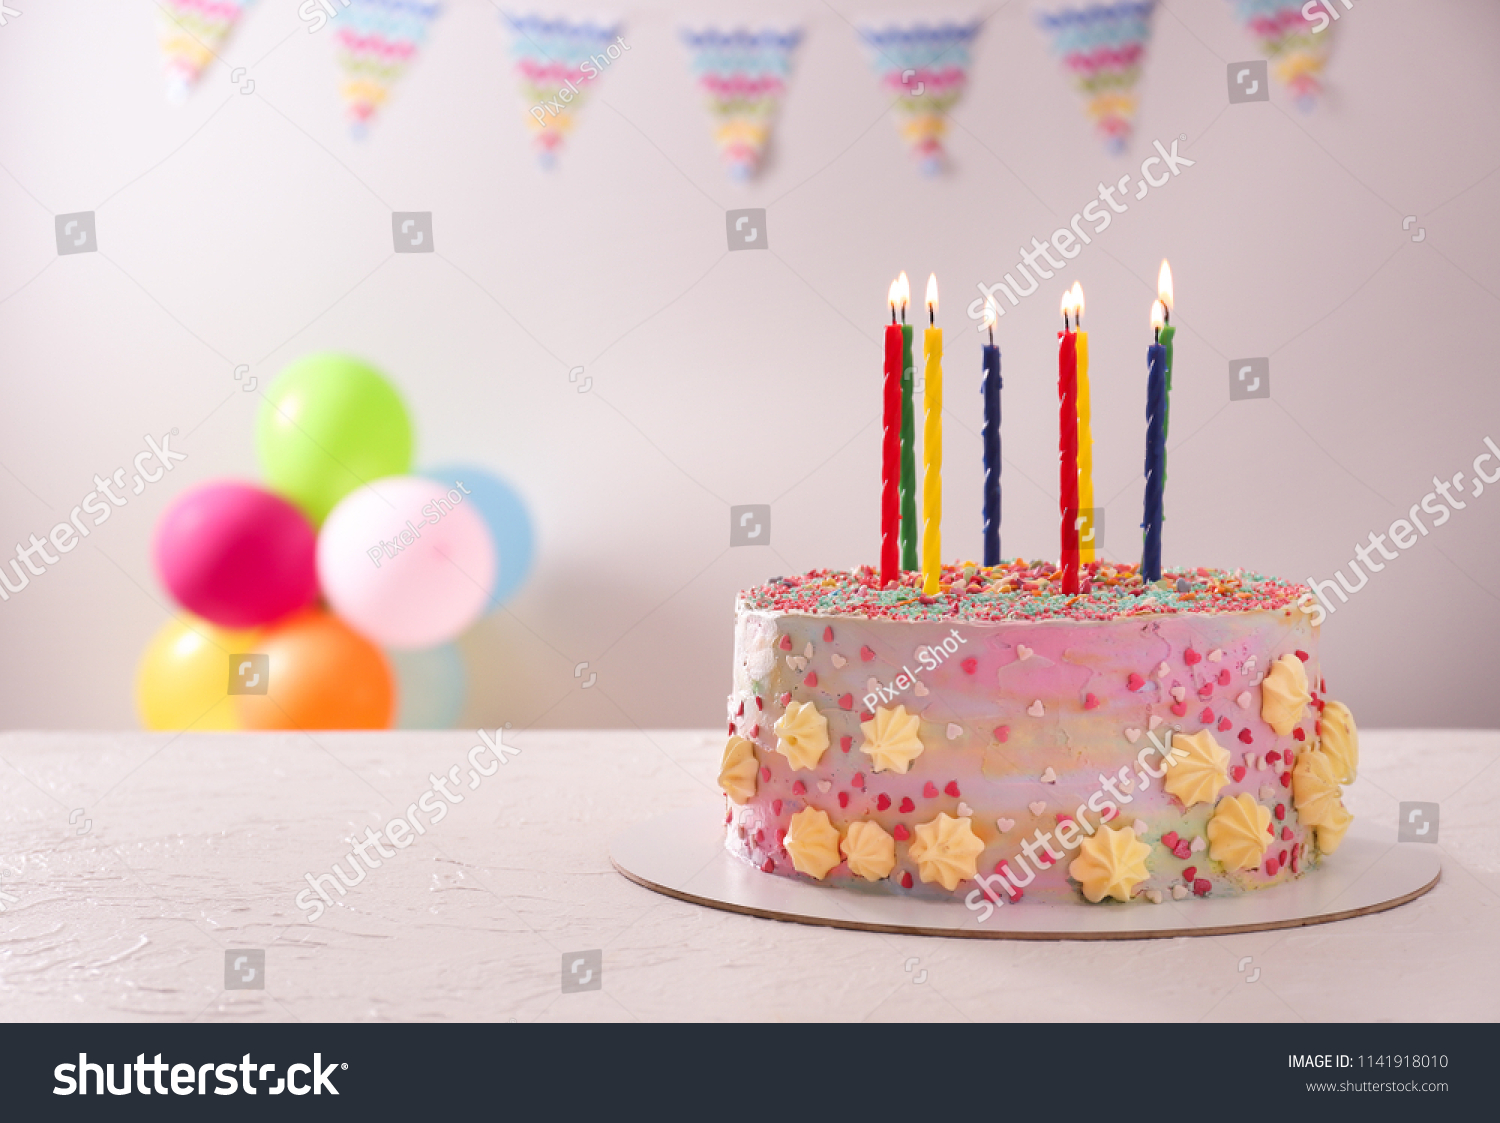 Beautiful Tasty Birthday Cake With Candles On White Table